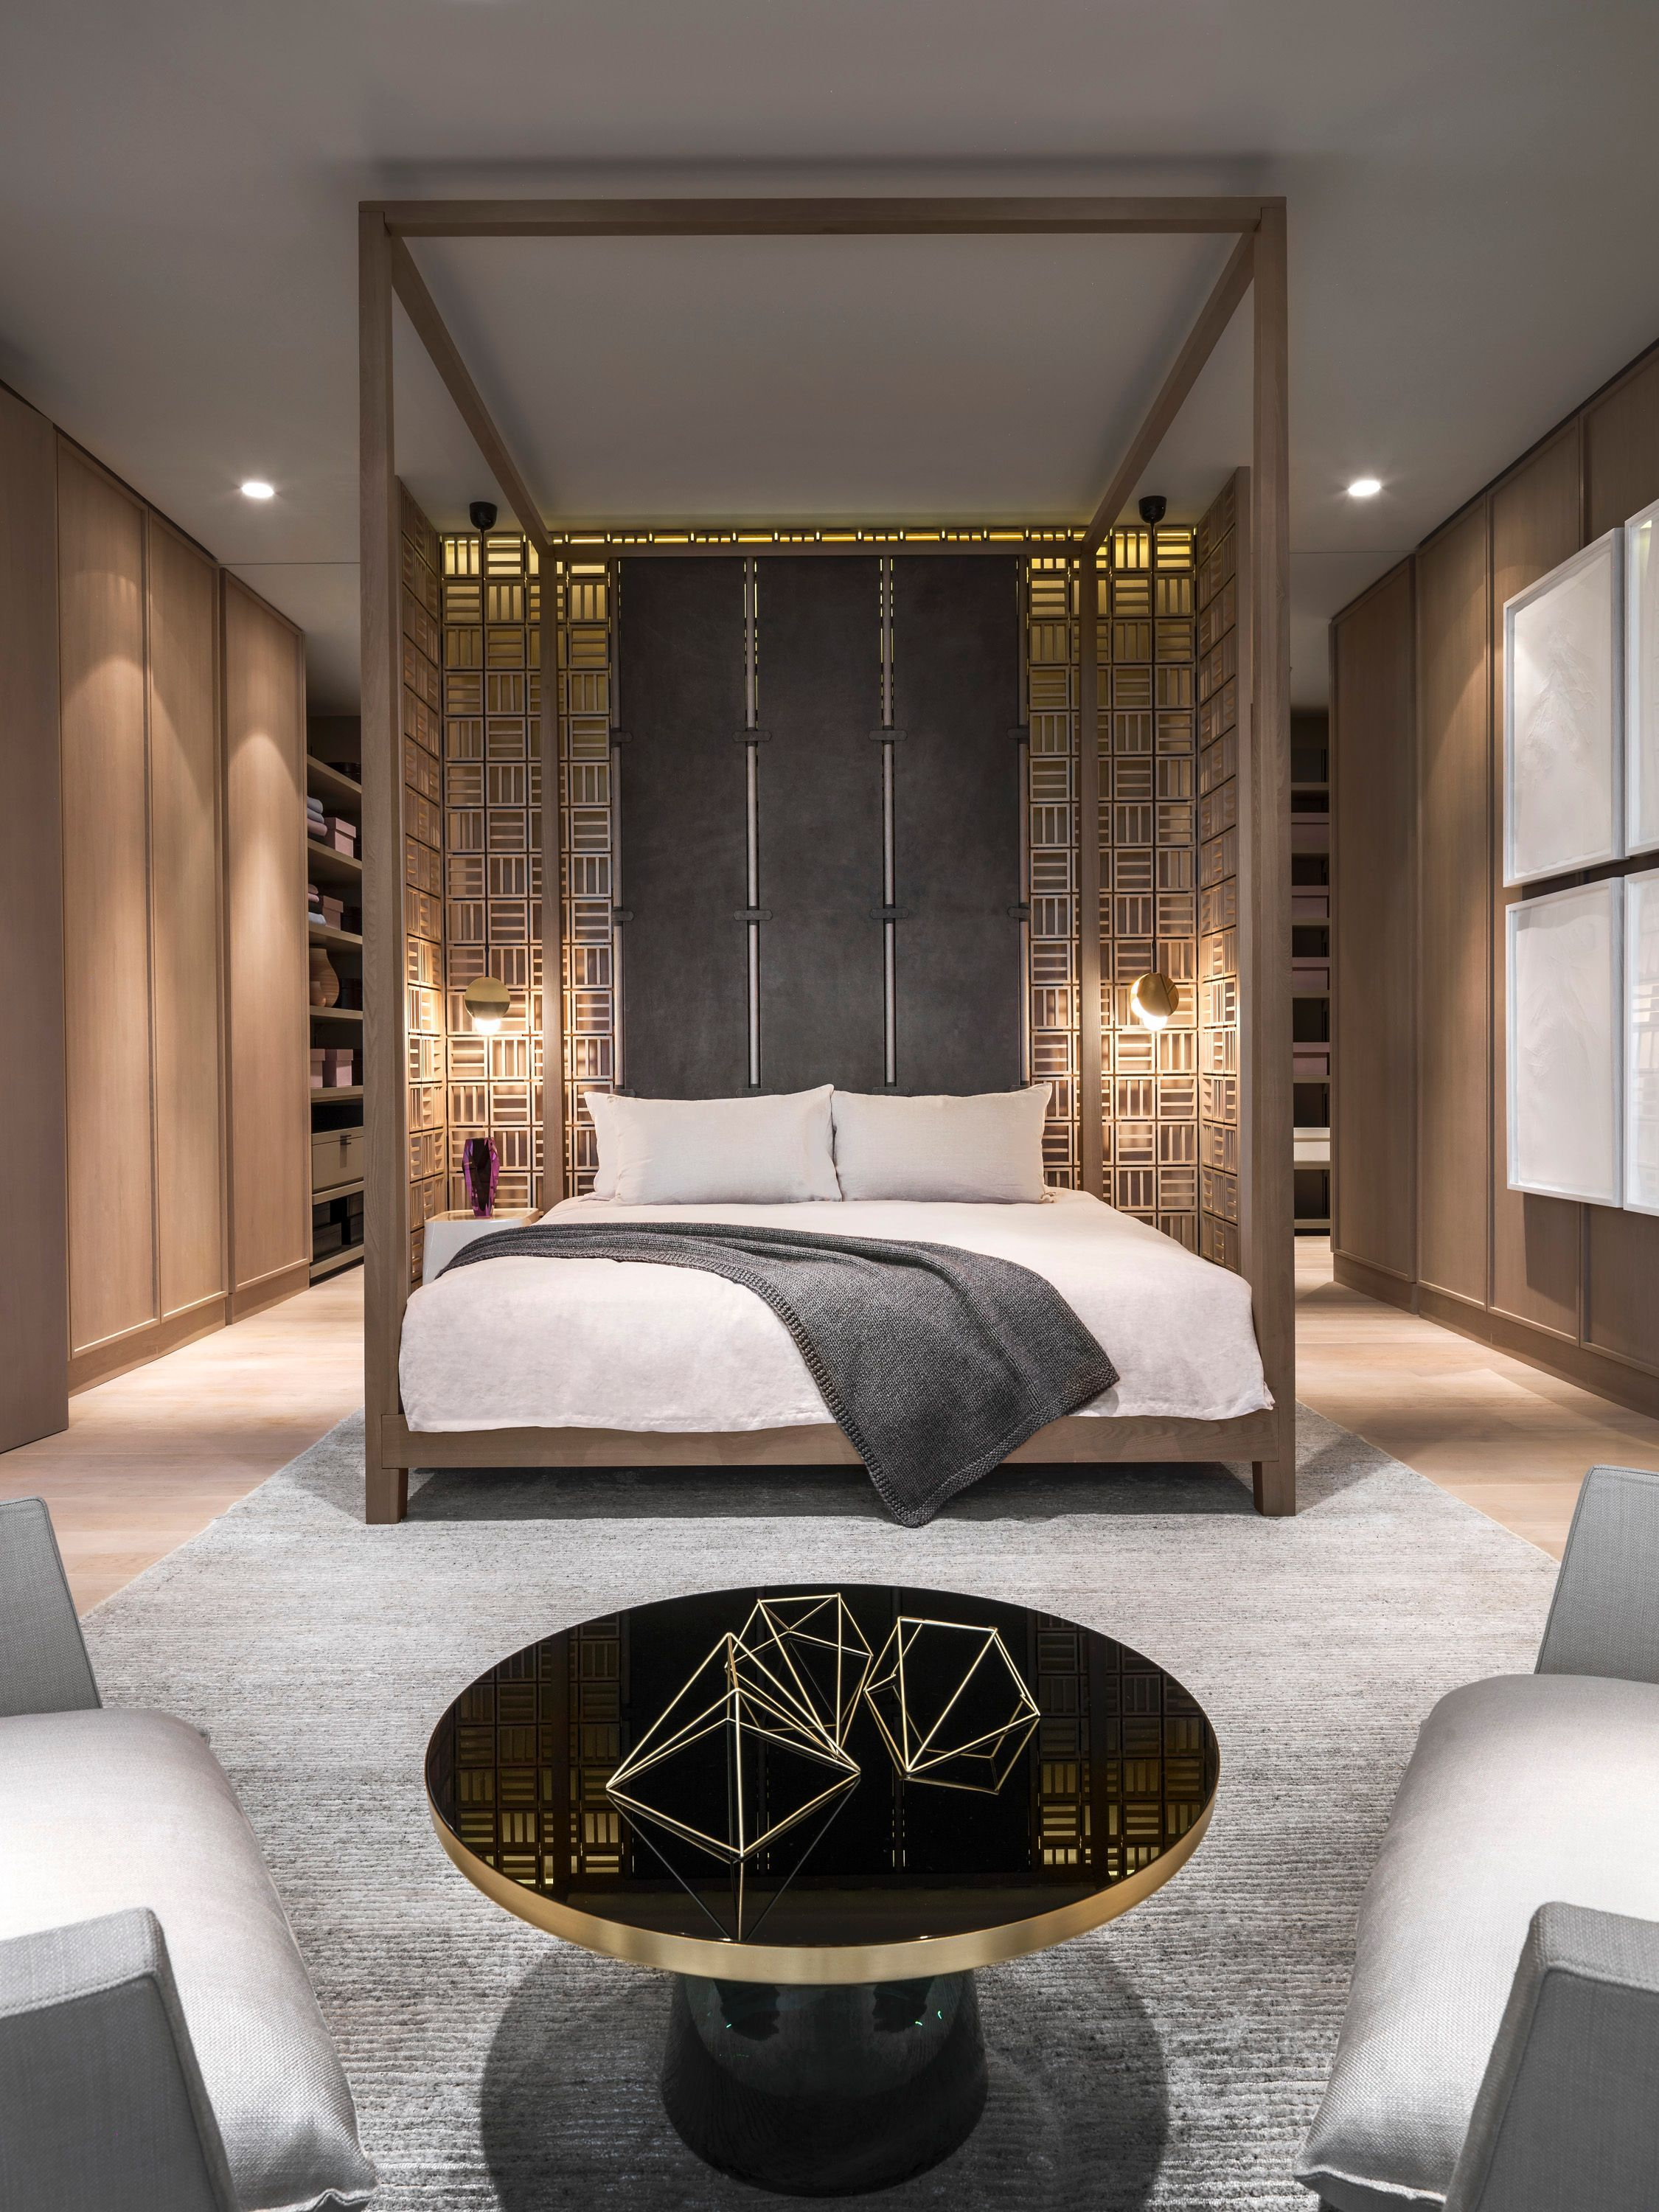 Yabu pushelberg bedrooms pinterest chambre avec Chambre contemporaine zen